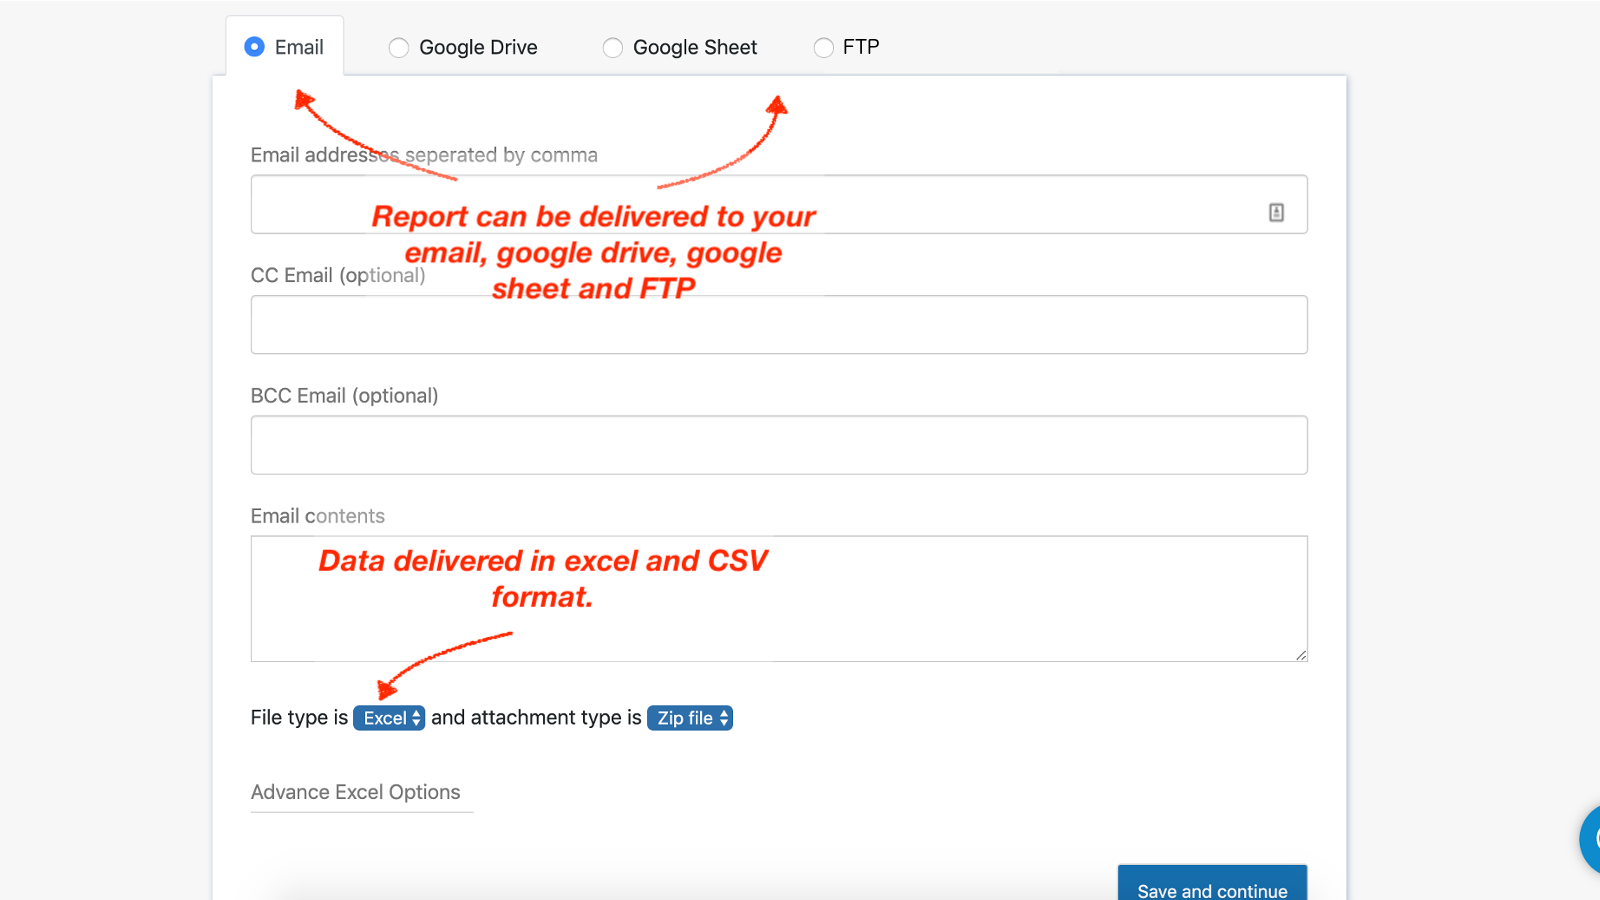 Schedule reports for auto-delivery by email, google drive & FTP